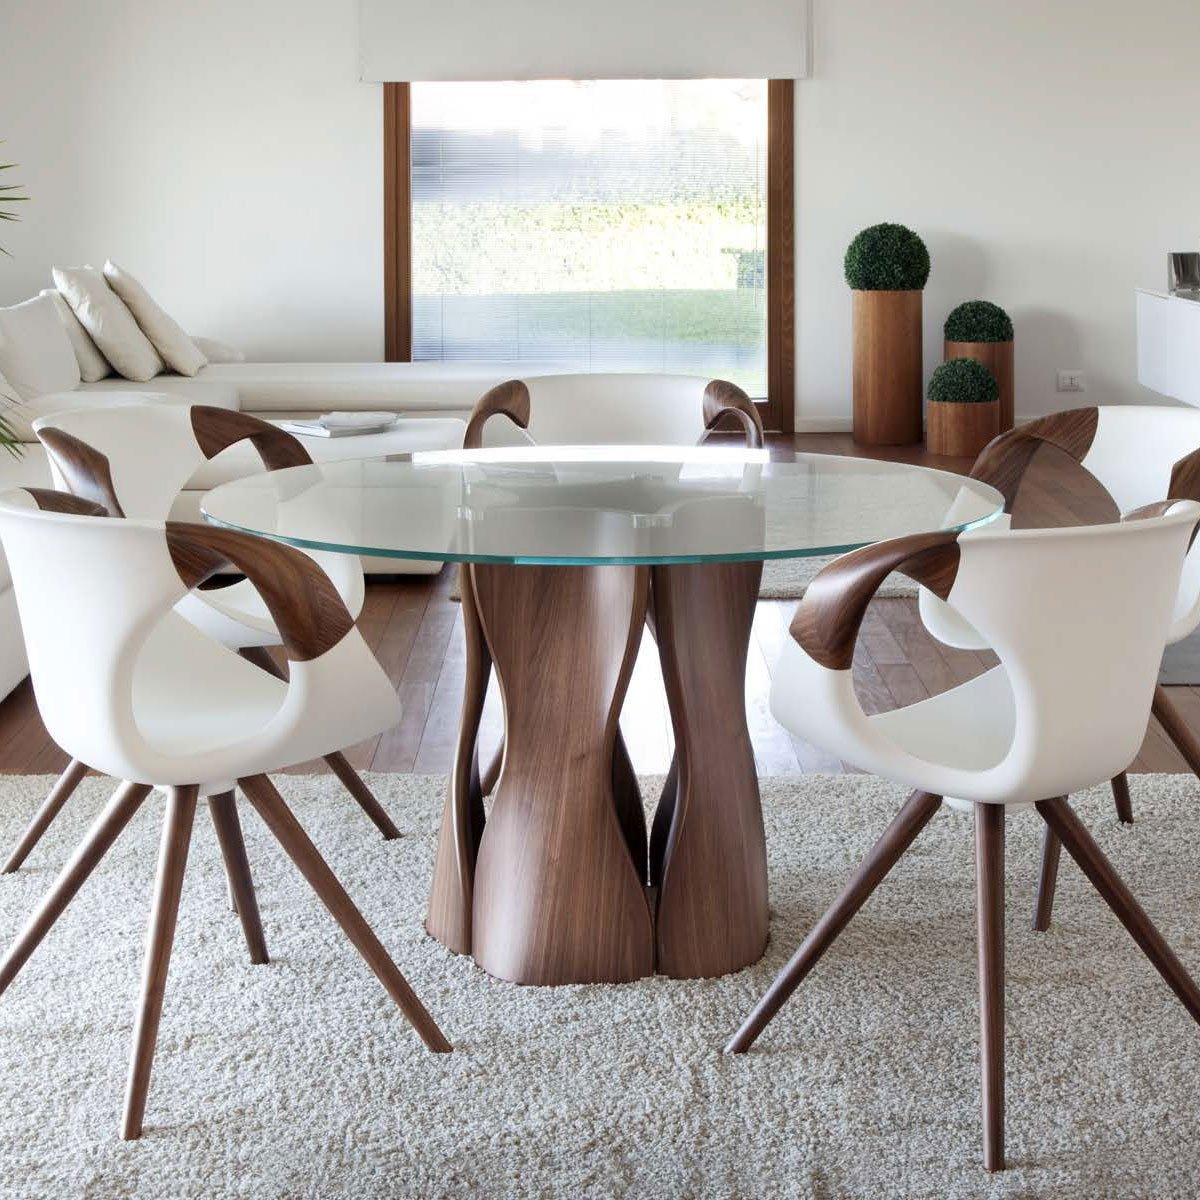 Glass Top Table Klarity Furniture, Glass Dining Room Table With Wood Base